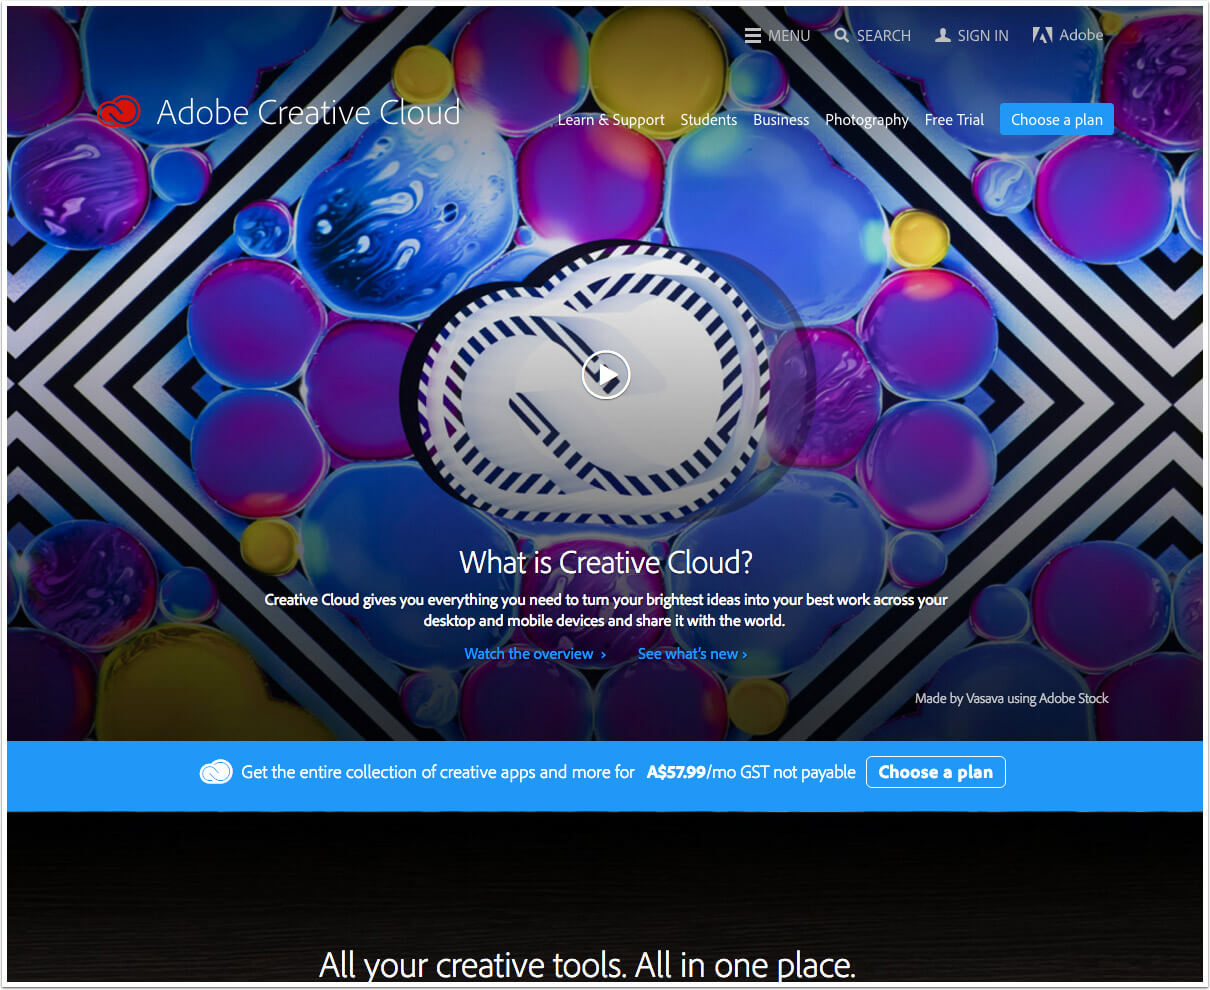 adobe-creative-cloud-software-and-services-for-creatives